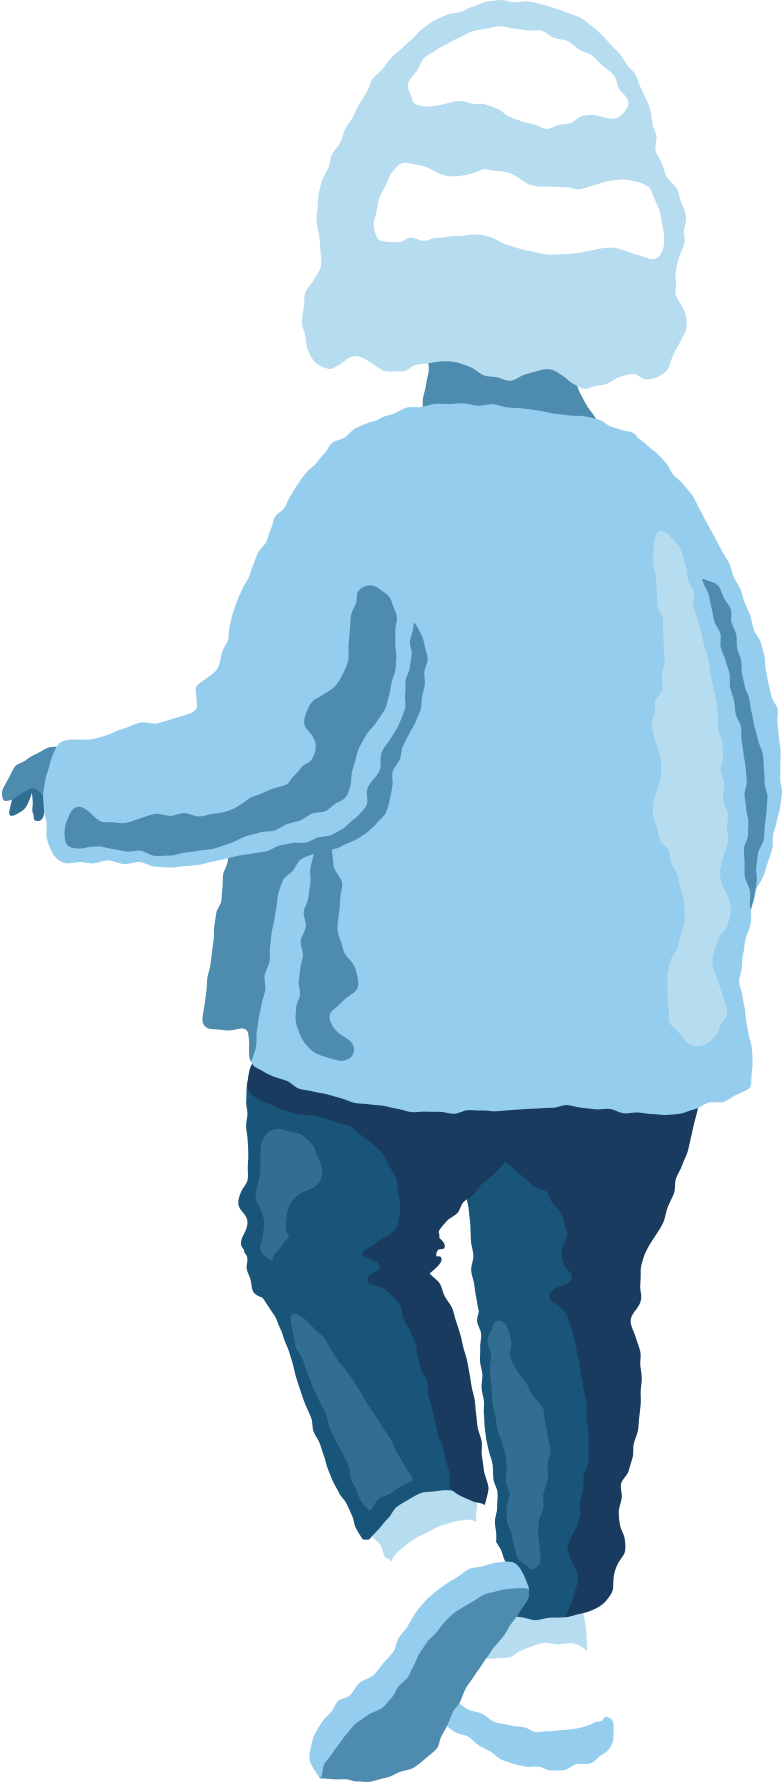 style chubby girl standing back Vector images in PNG and SVG | Icons8 Illustrations